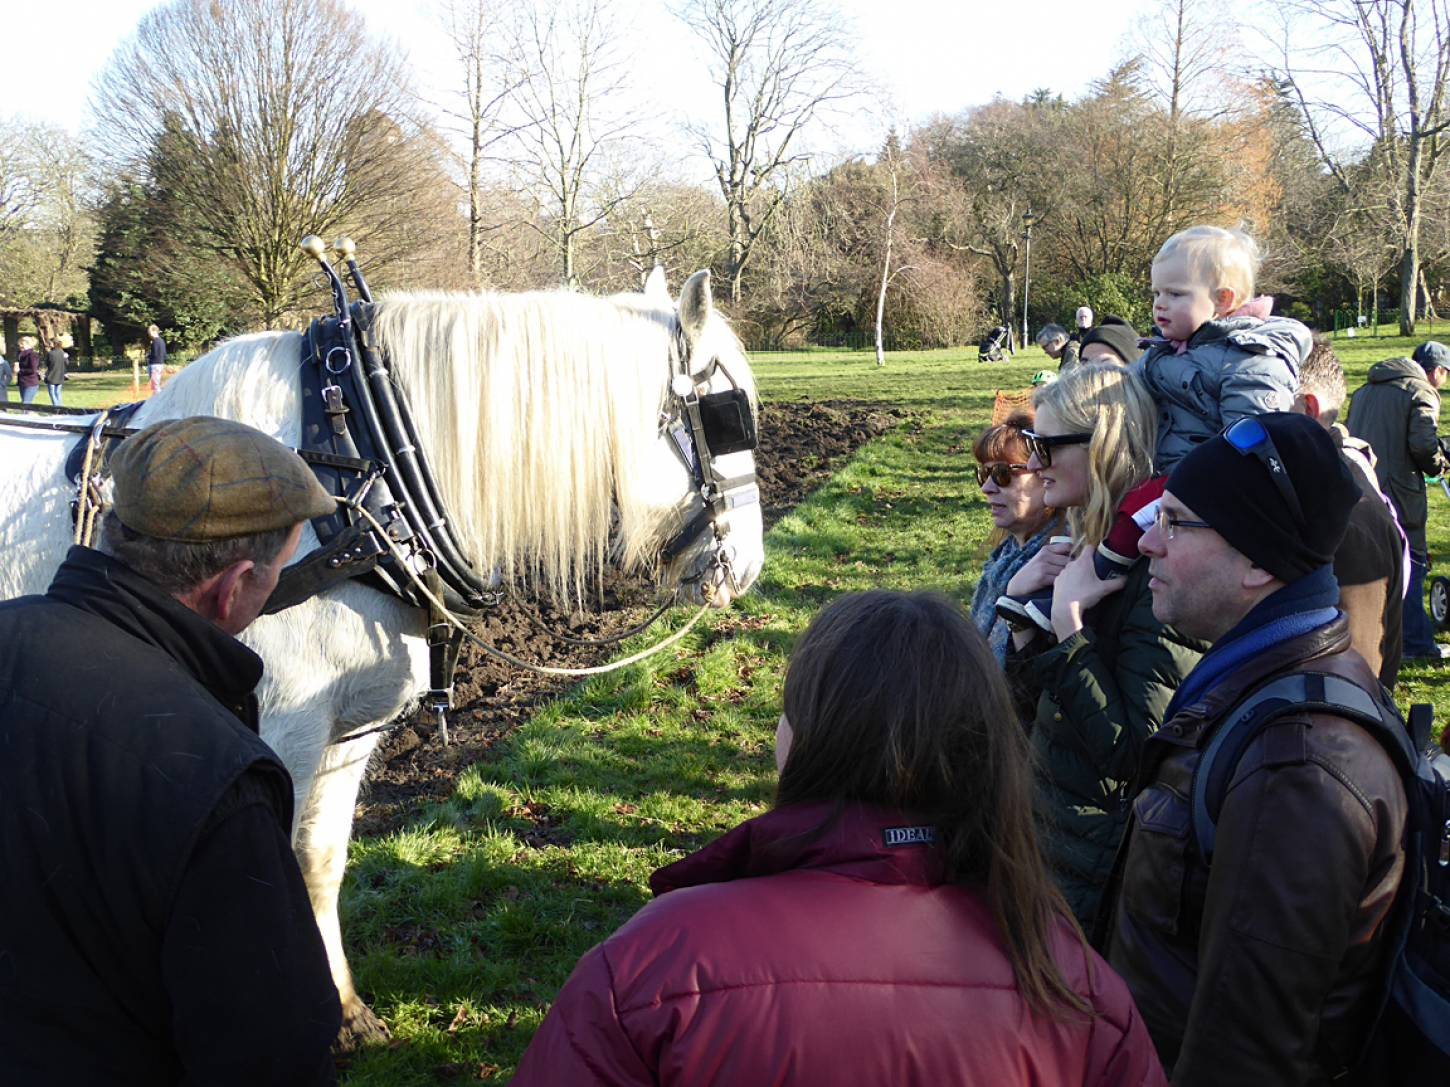 Shire horse Heath and ploughman Tom Nixon from <a href='http://www.operationcentaur.com/' target='_blank'>Operation Centaur</a> return to harrow our wheat patch on <a href='https://www.friendsofruskinpark.org.uk/' target='_blank'>Ruskin Park</a> - 11:42am&nbsp;17<sup>th</sup>&nbsp;Feb.&nbsp;'18  <a href='http://maps.google.com/?t=h&q=51.464714,-0.092919&z=18&output=embed' target=_blank><img src='http://www.brockwell-bake.org.uk/img/marker.png' style='border:none;vertical-align:top' height=16px></a>